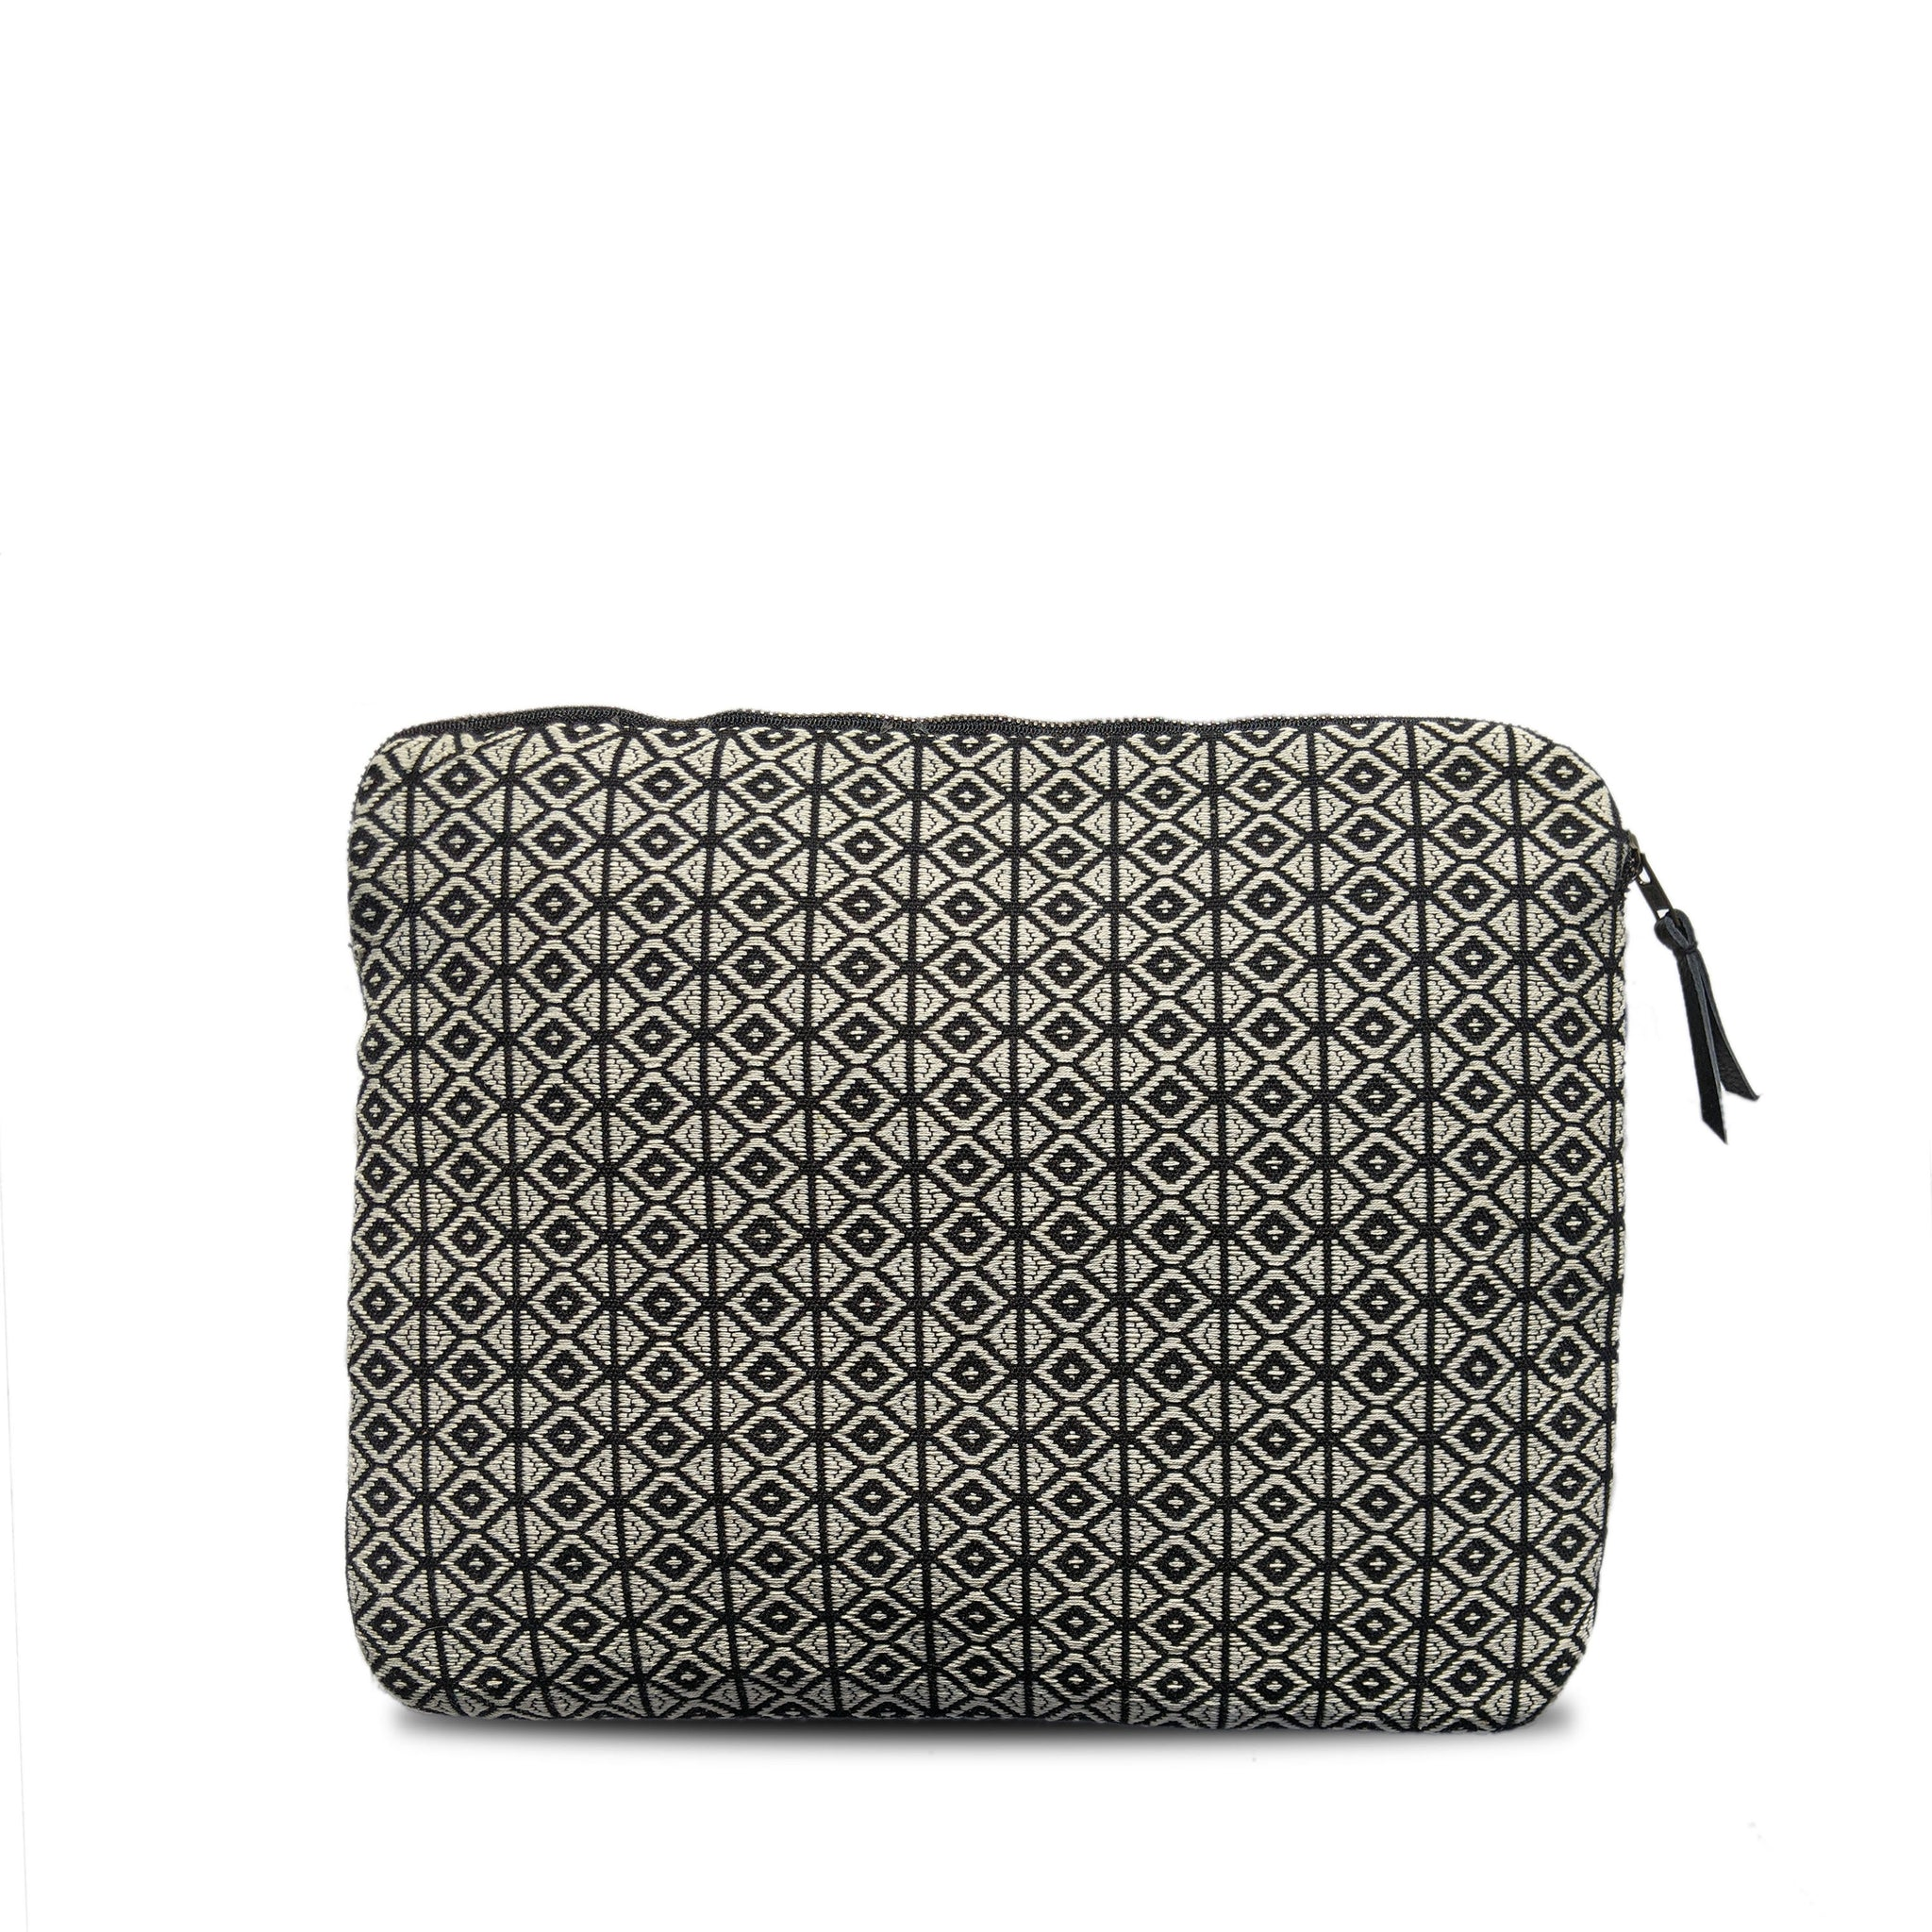 Laptop Case in Black Diamond Brocade